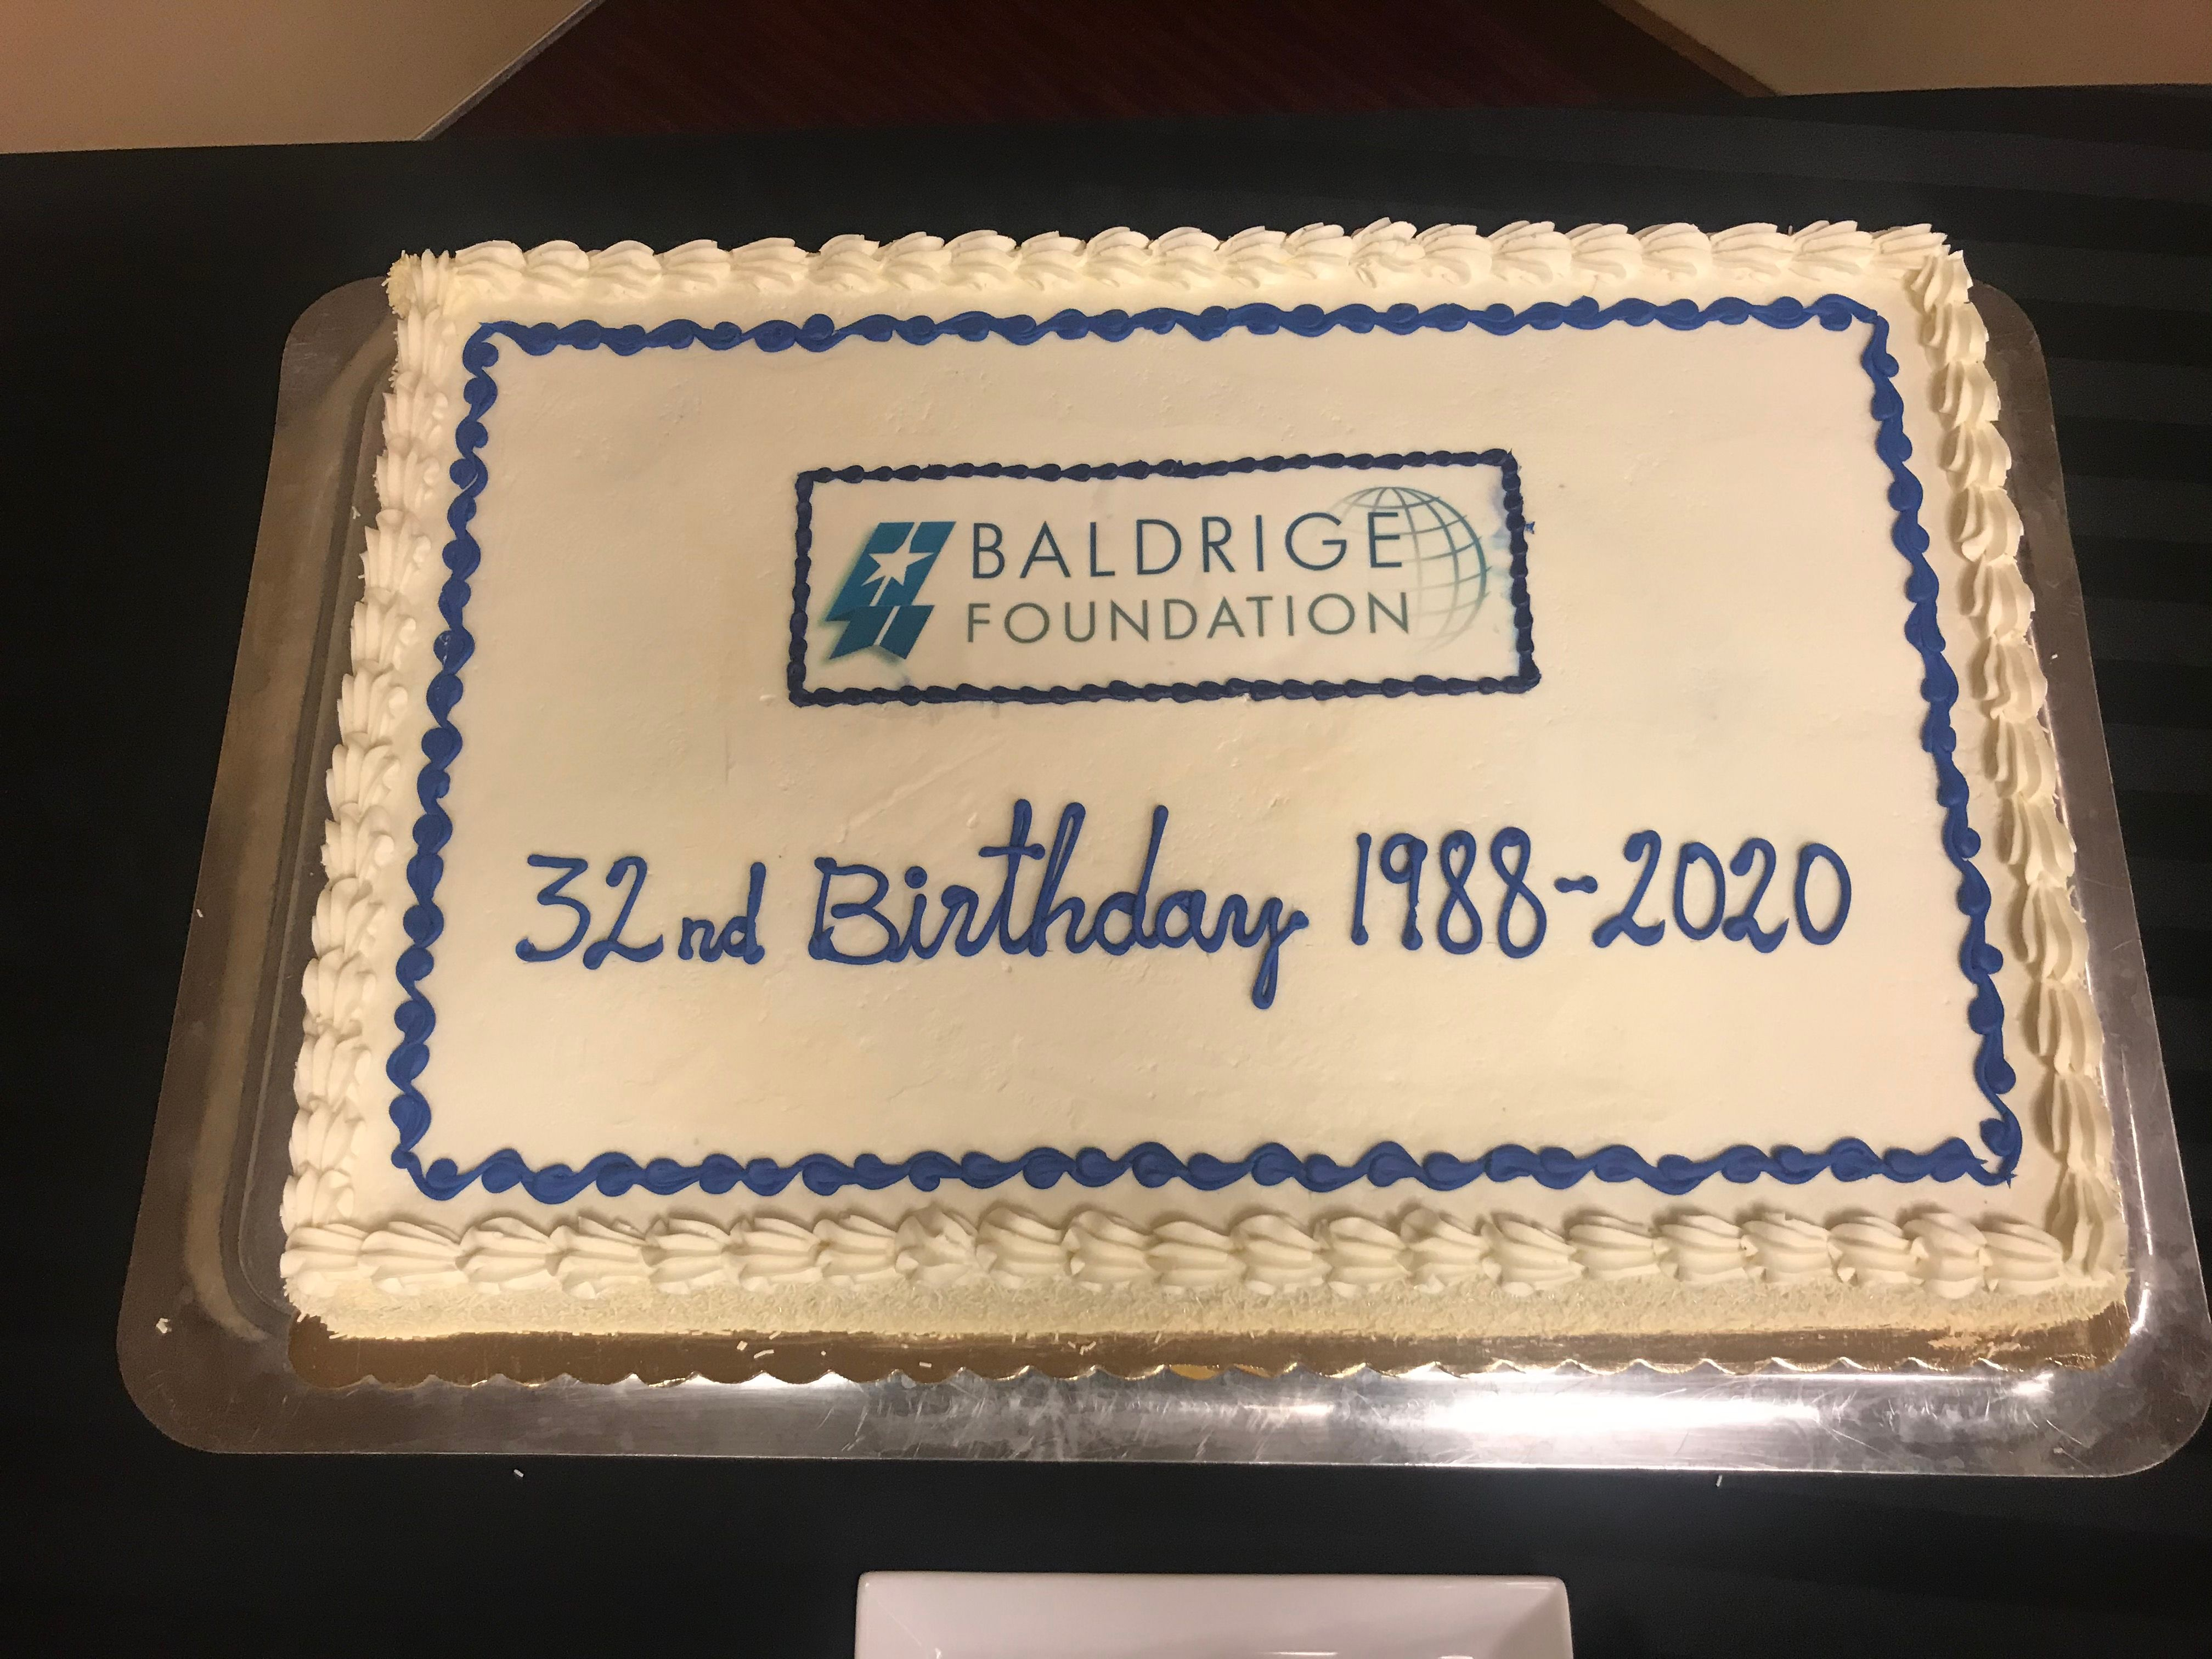 Baldrige Foundation Celebrates 32nd Anniversary of Its Founding